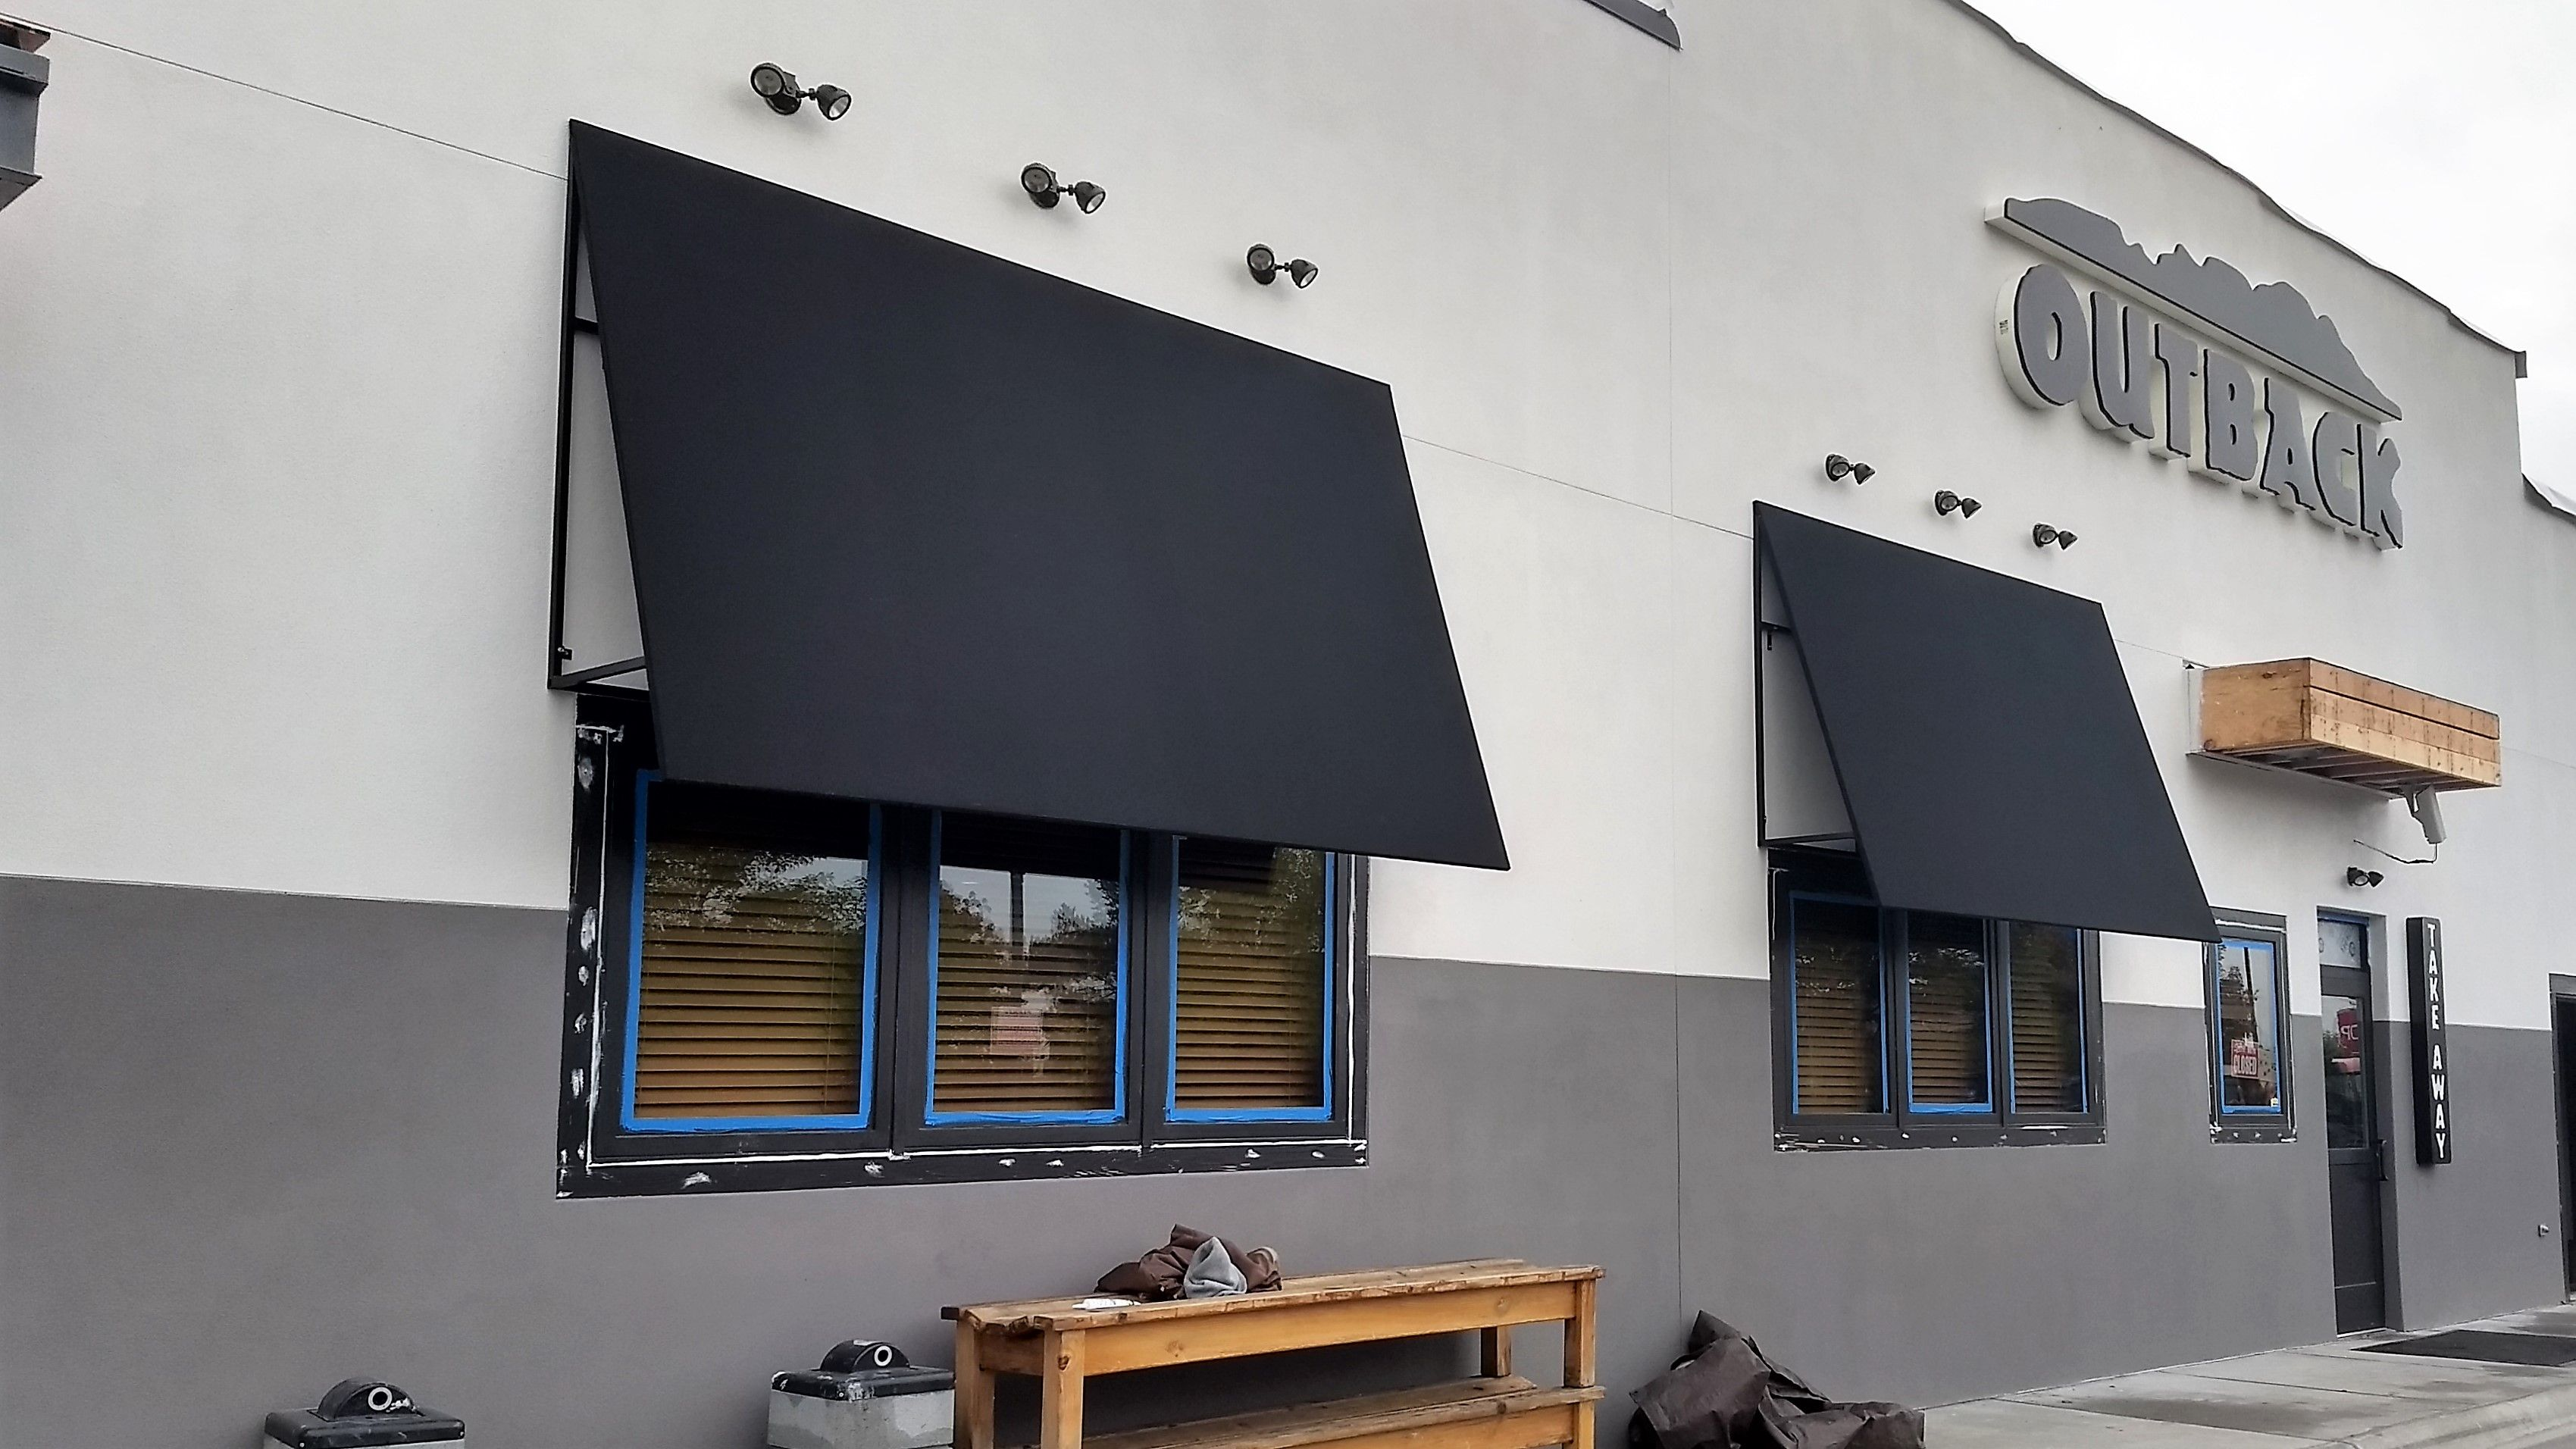 Outback Steakhouse 🍴open Shed, Custom Fabric Awnings. Www.vestissystems.com